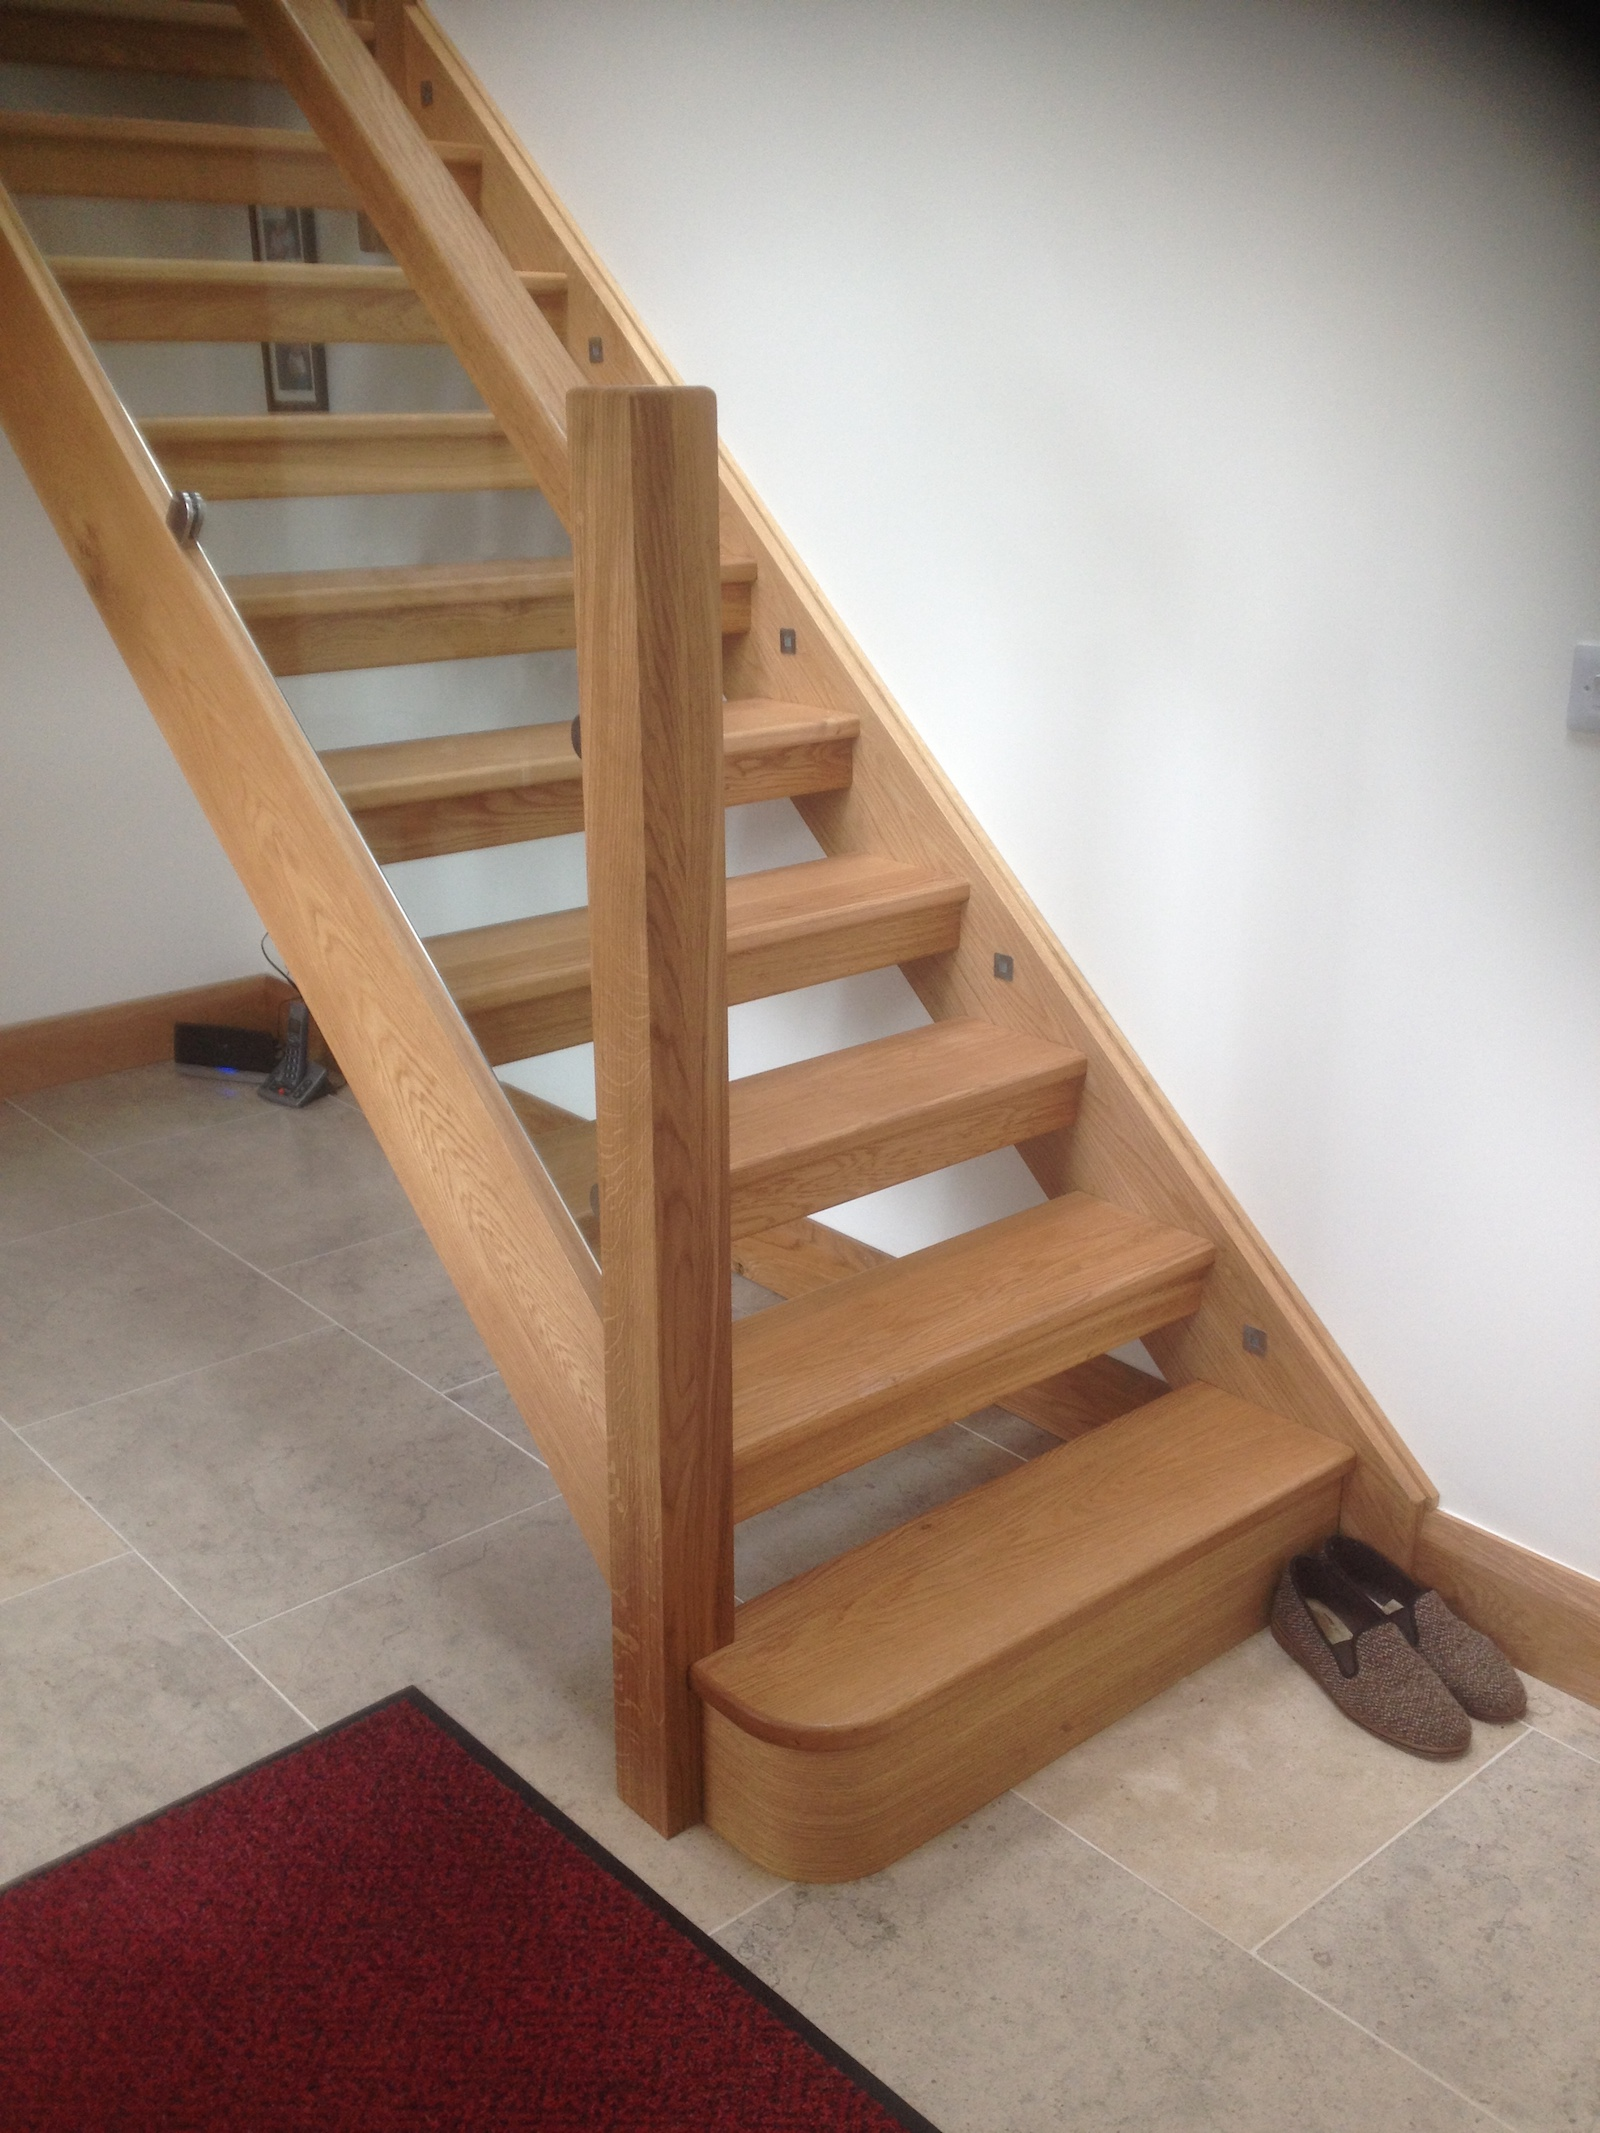 Stair manufacture by Lakeland Building Group